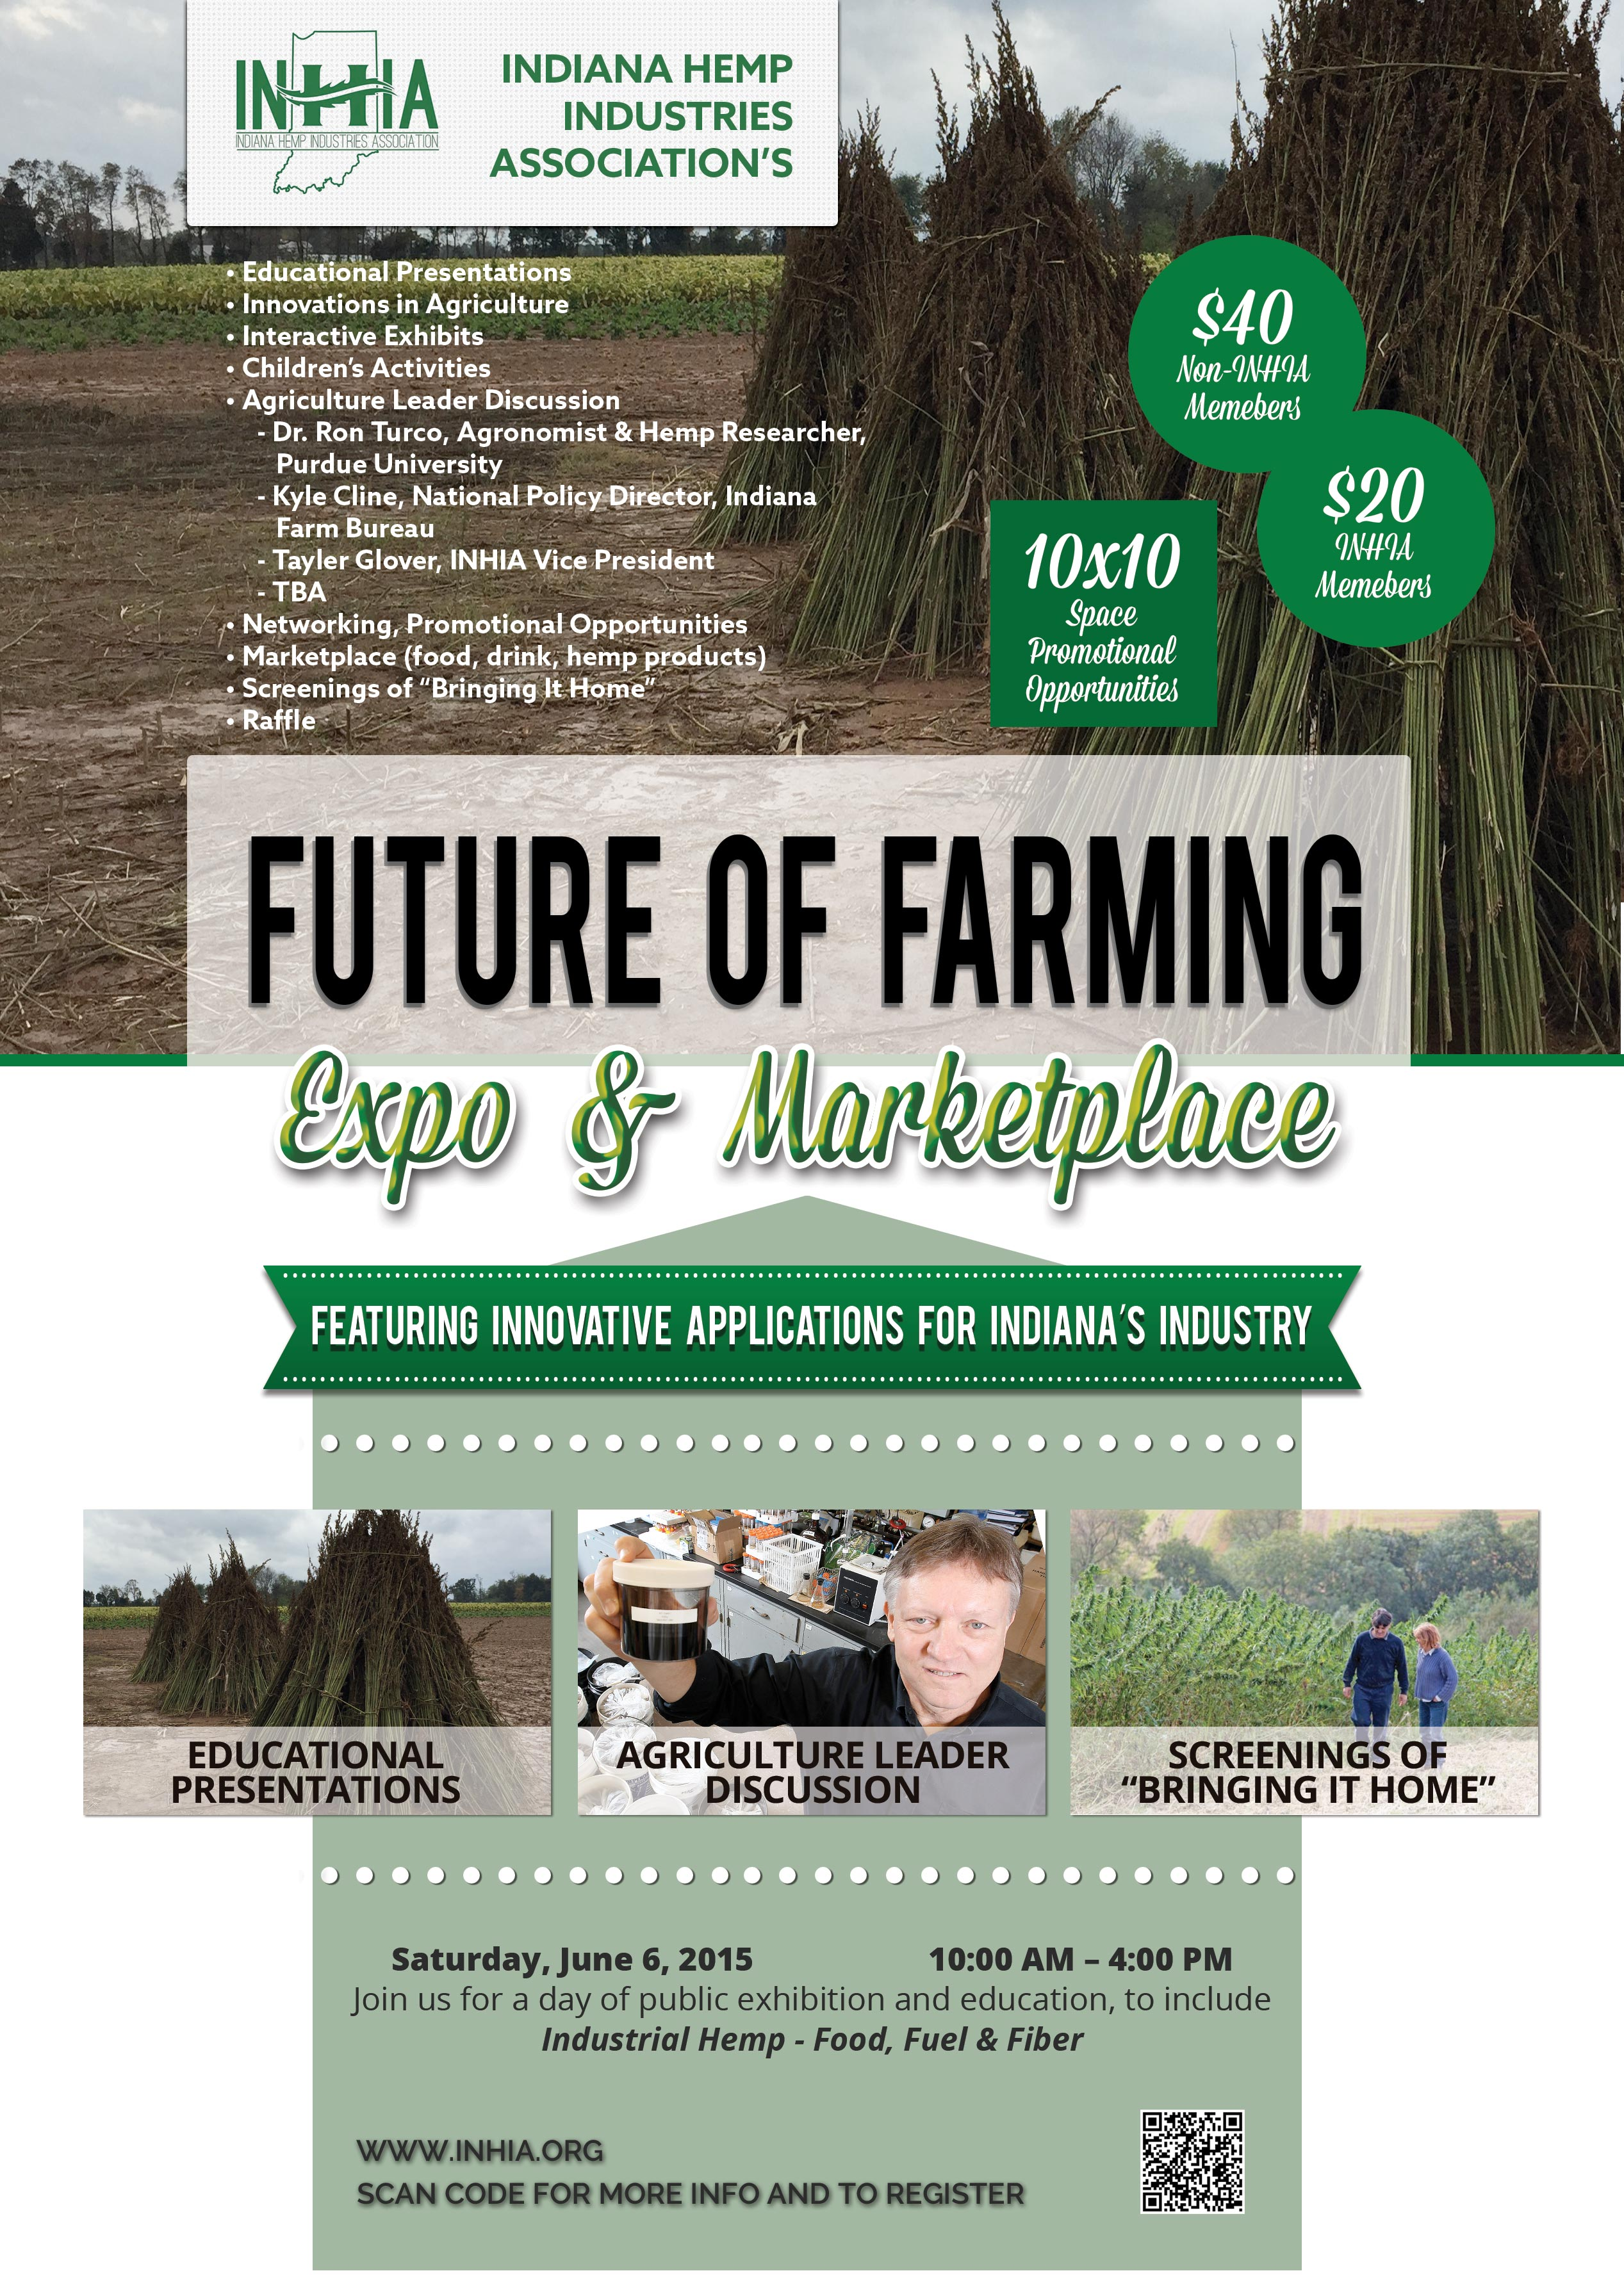 inhia-expo-hemp-marketplace-ron-turco-purdue-agriculture-event-b